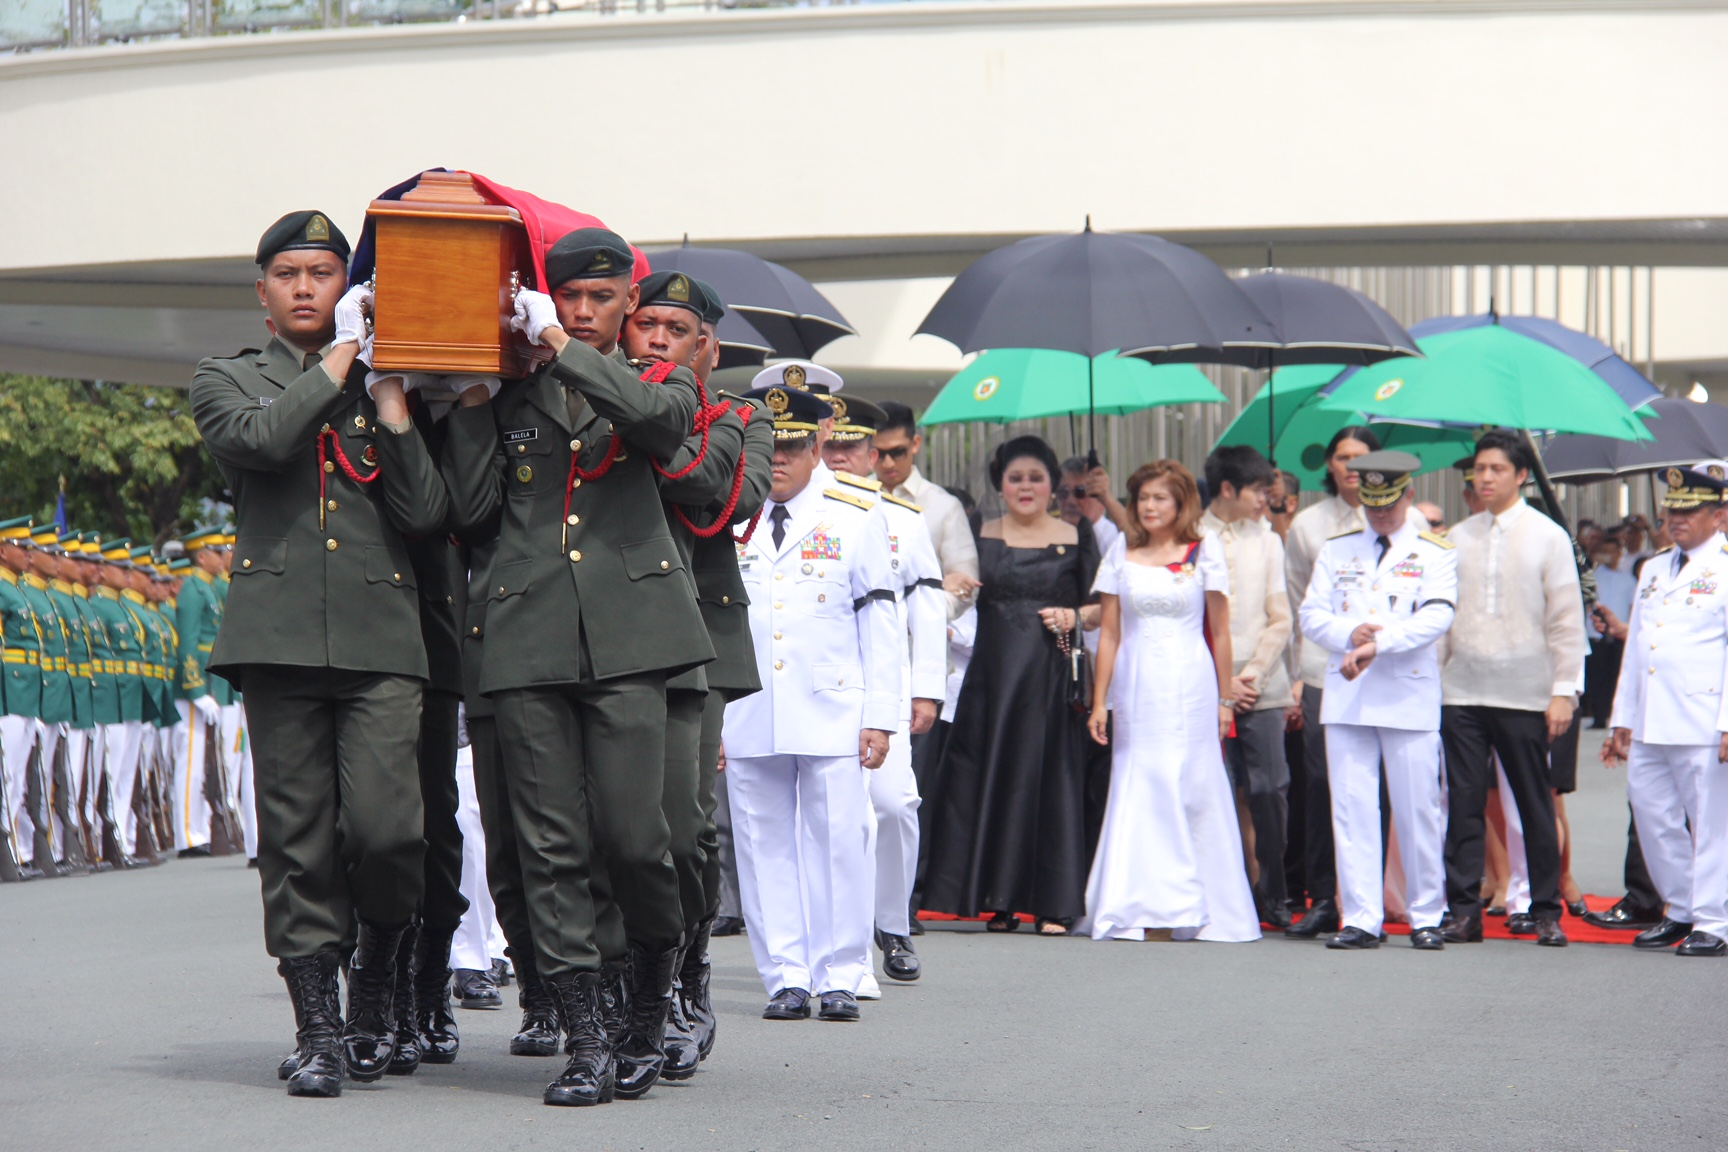 CONTROVERSIAL BURIAL. The late dictator Ferdinand Marcos is buried at the Heroes' Cemetery on November 18, 2016.